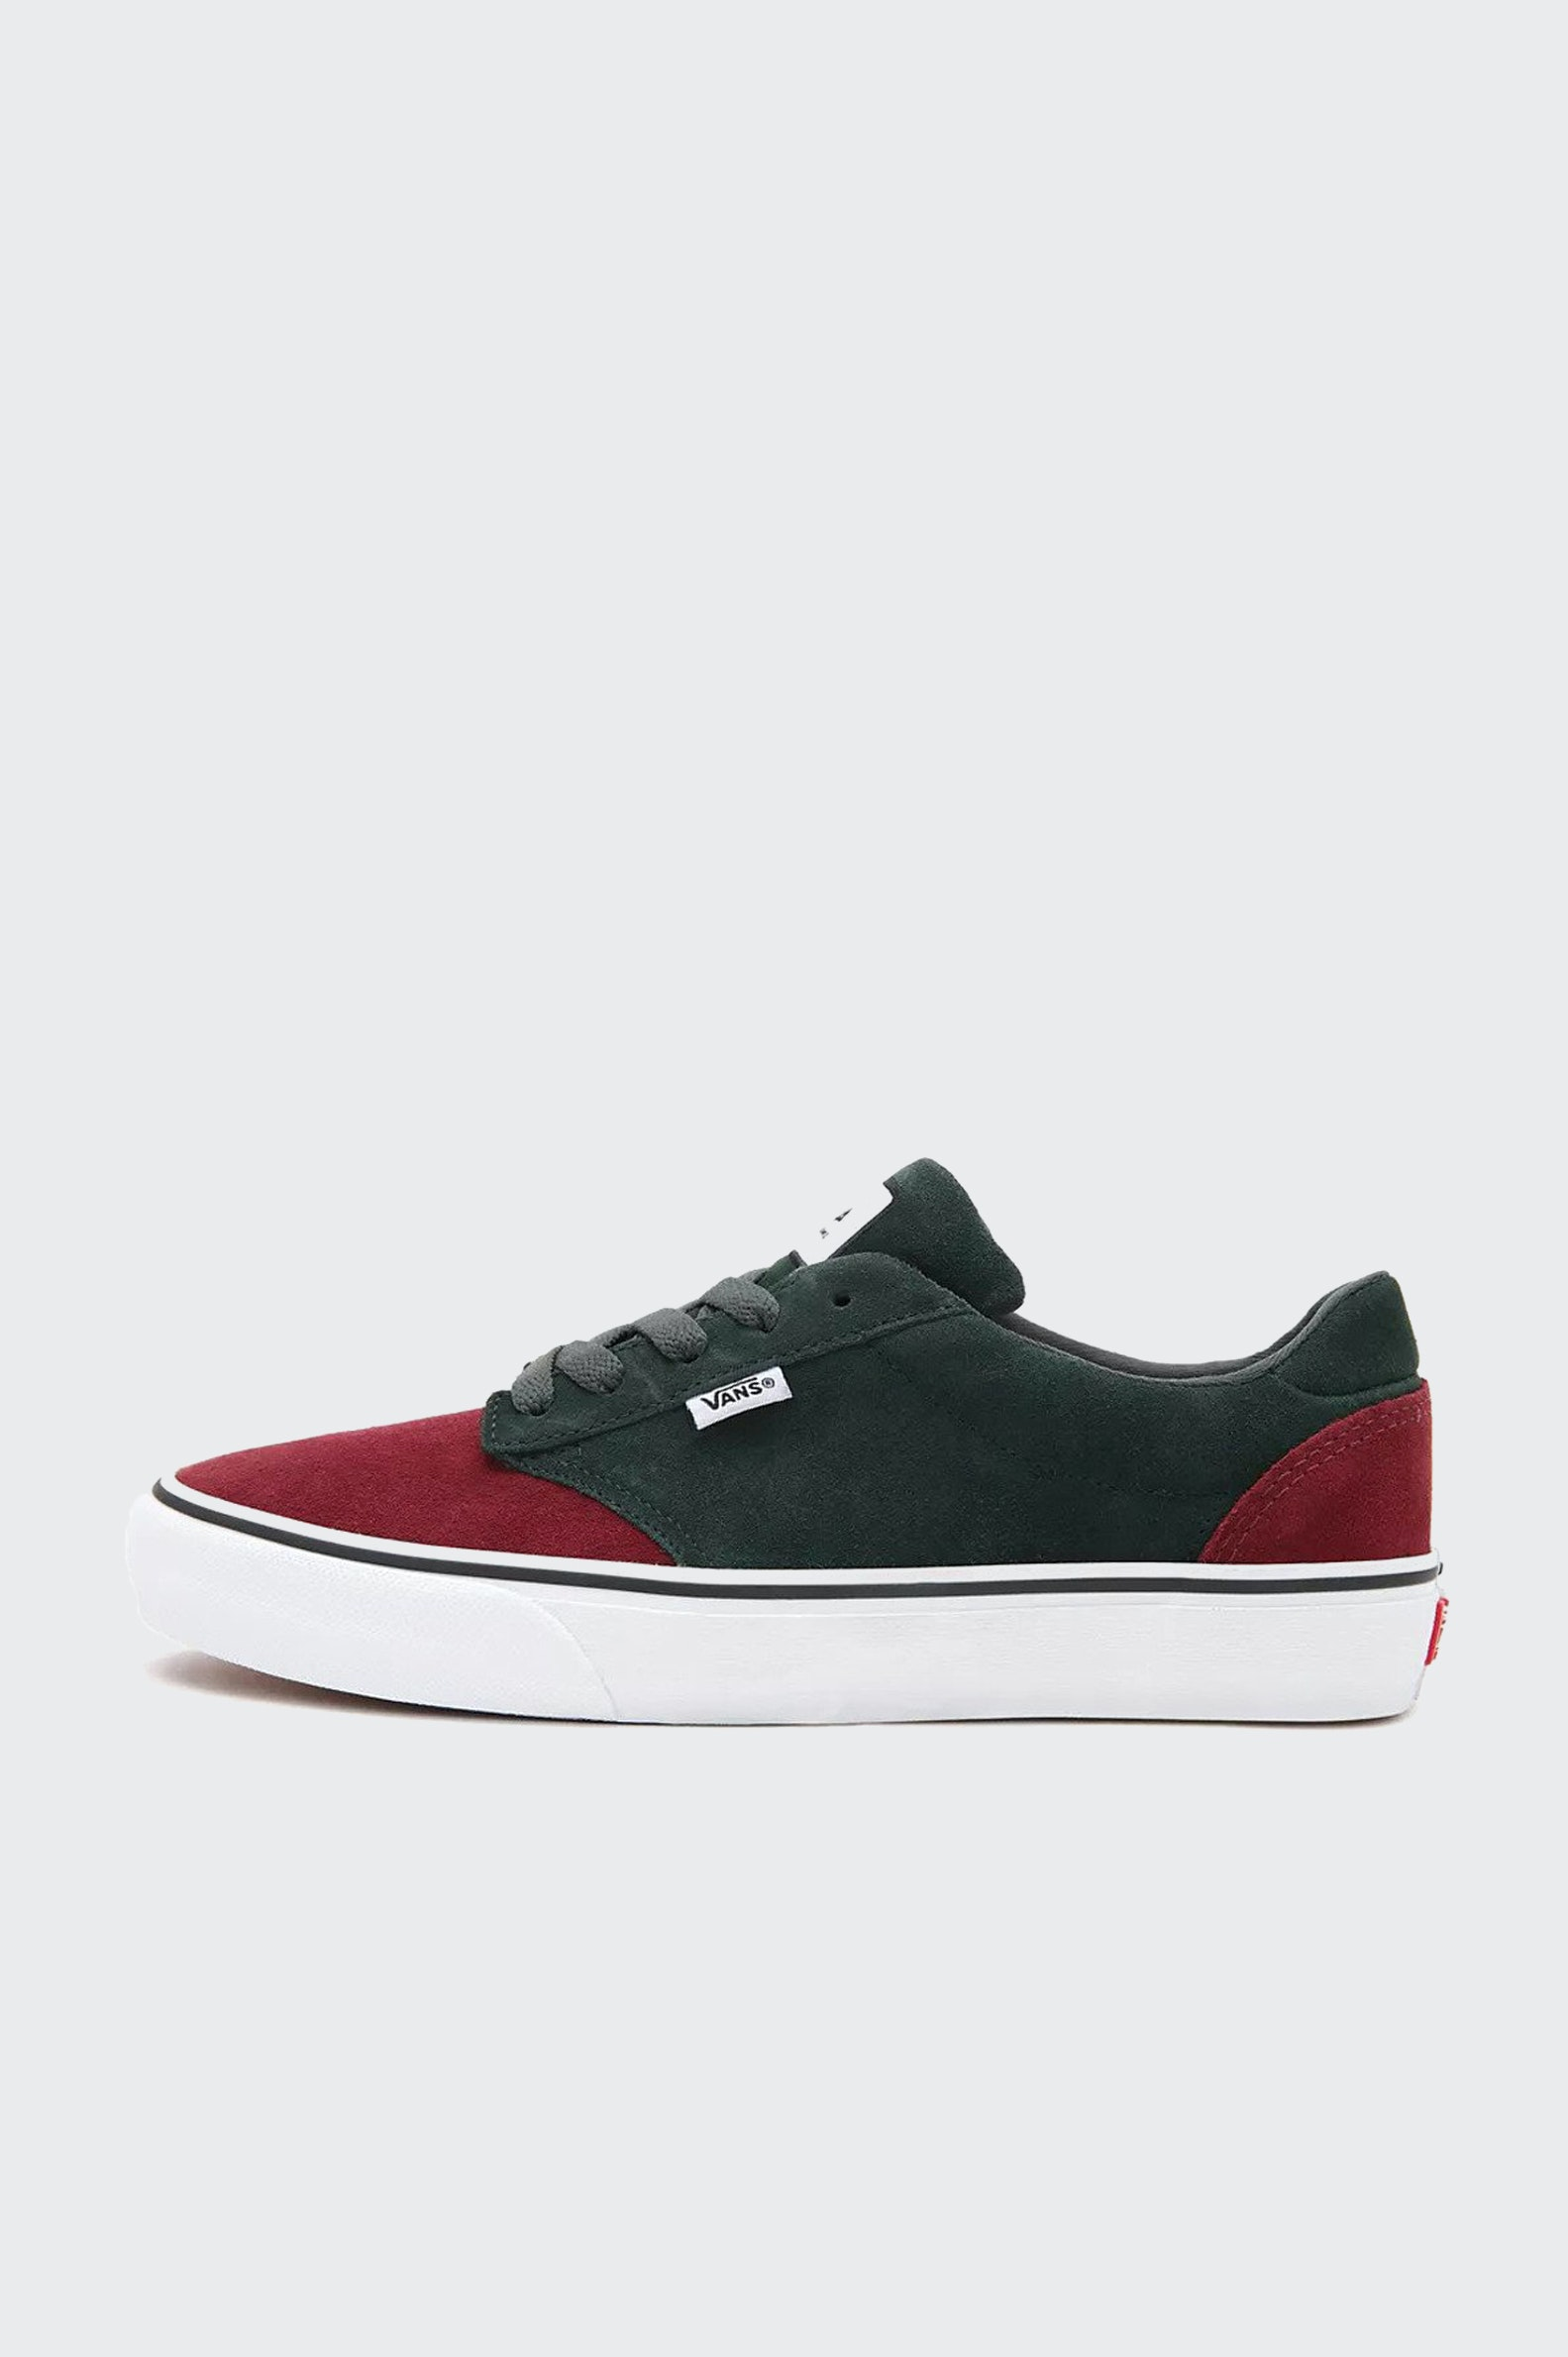 CHAUSSURES MODE VANS ATWOOD HOMME